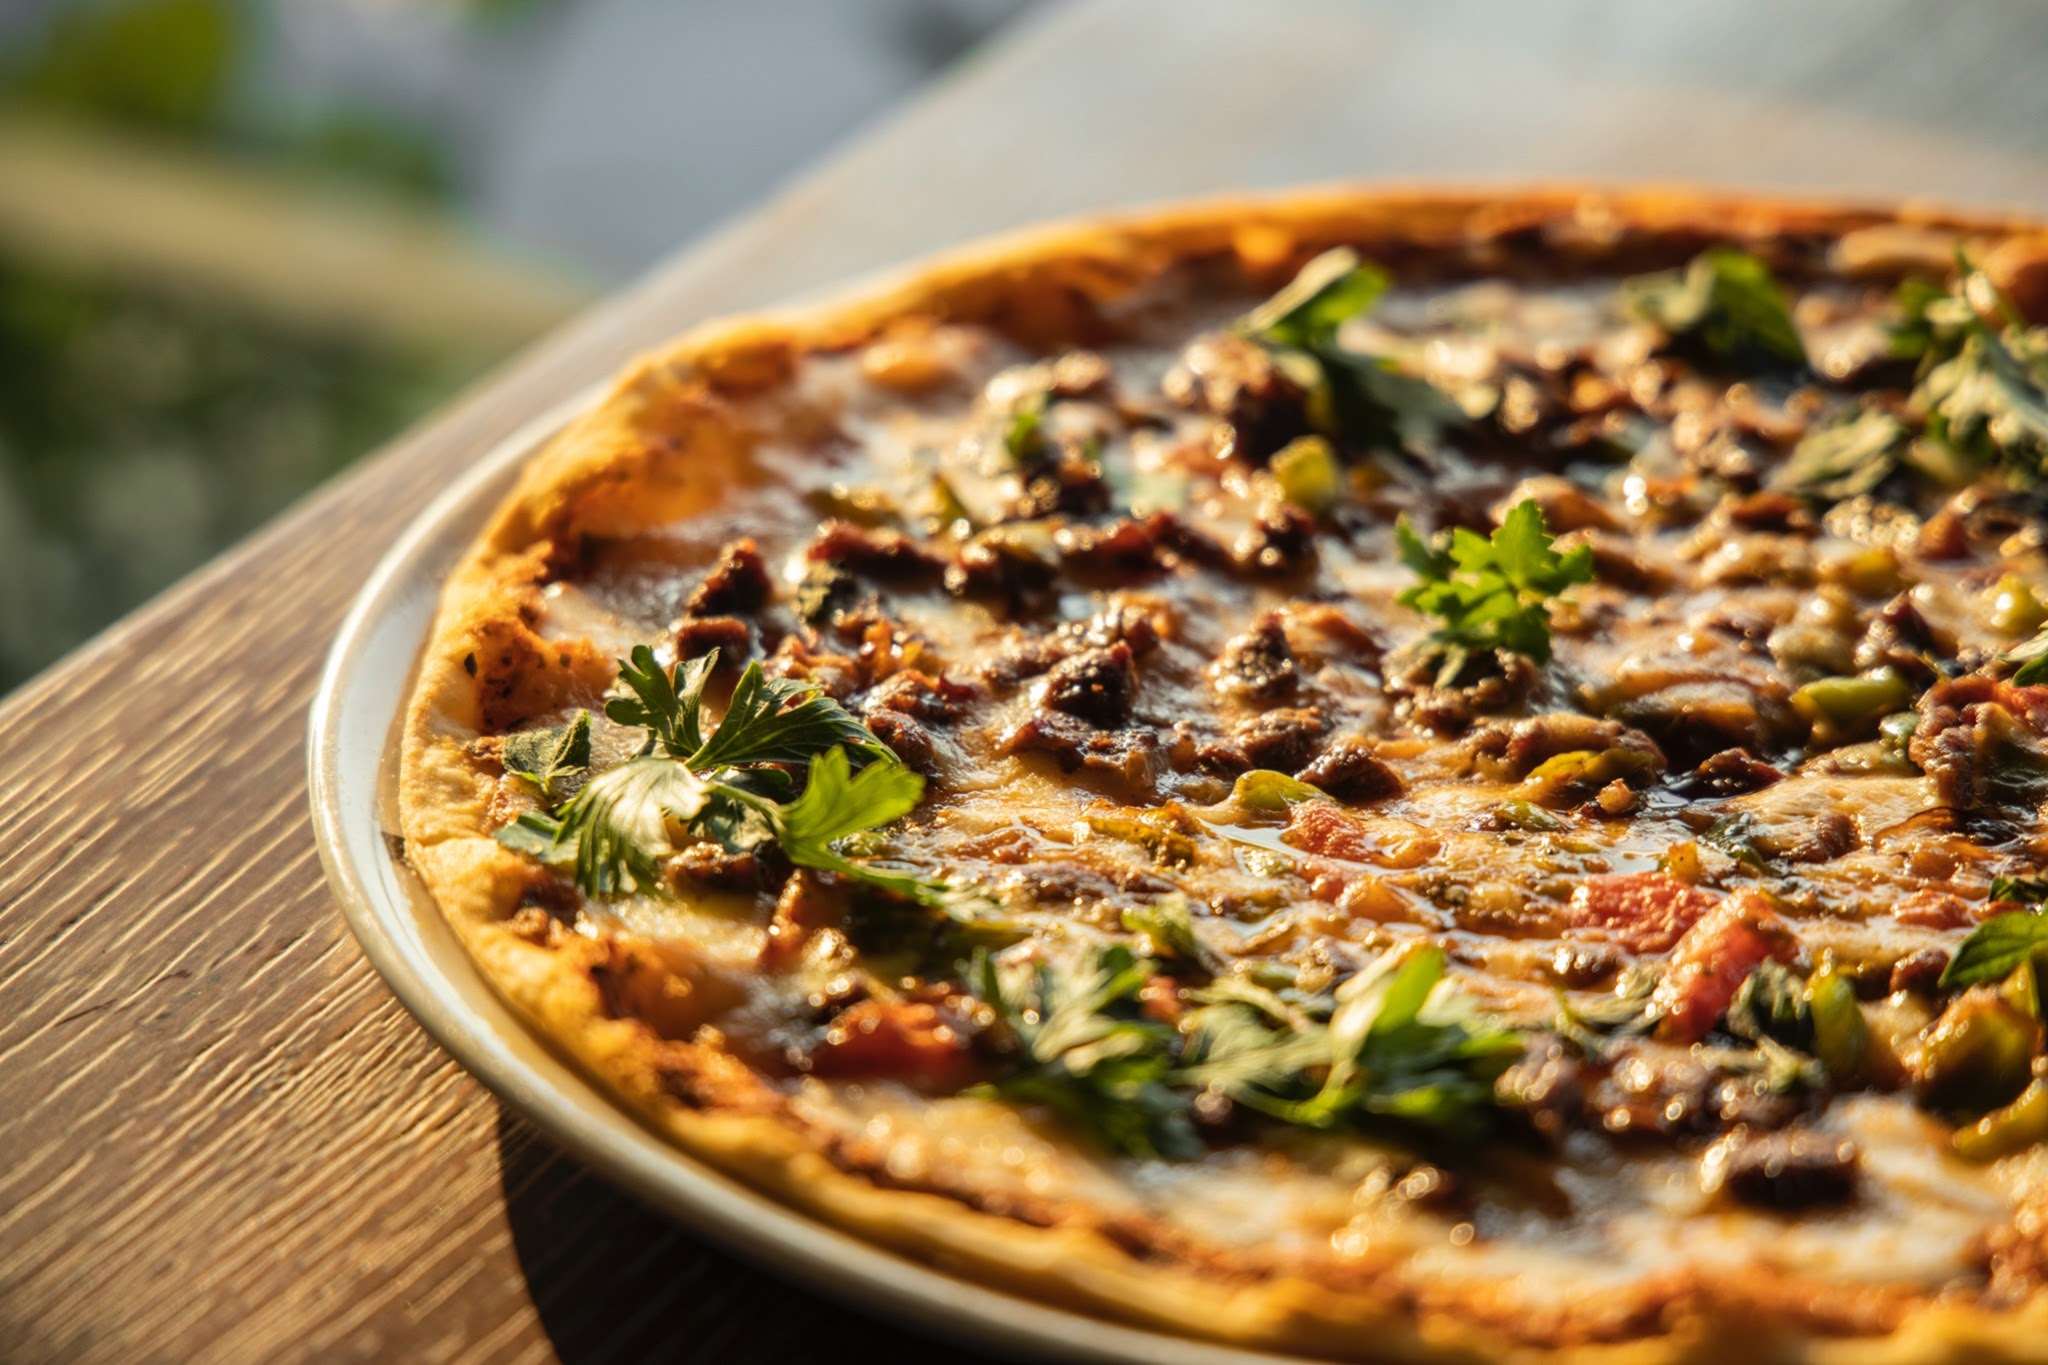 Pizza crust with green toppings